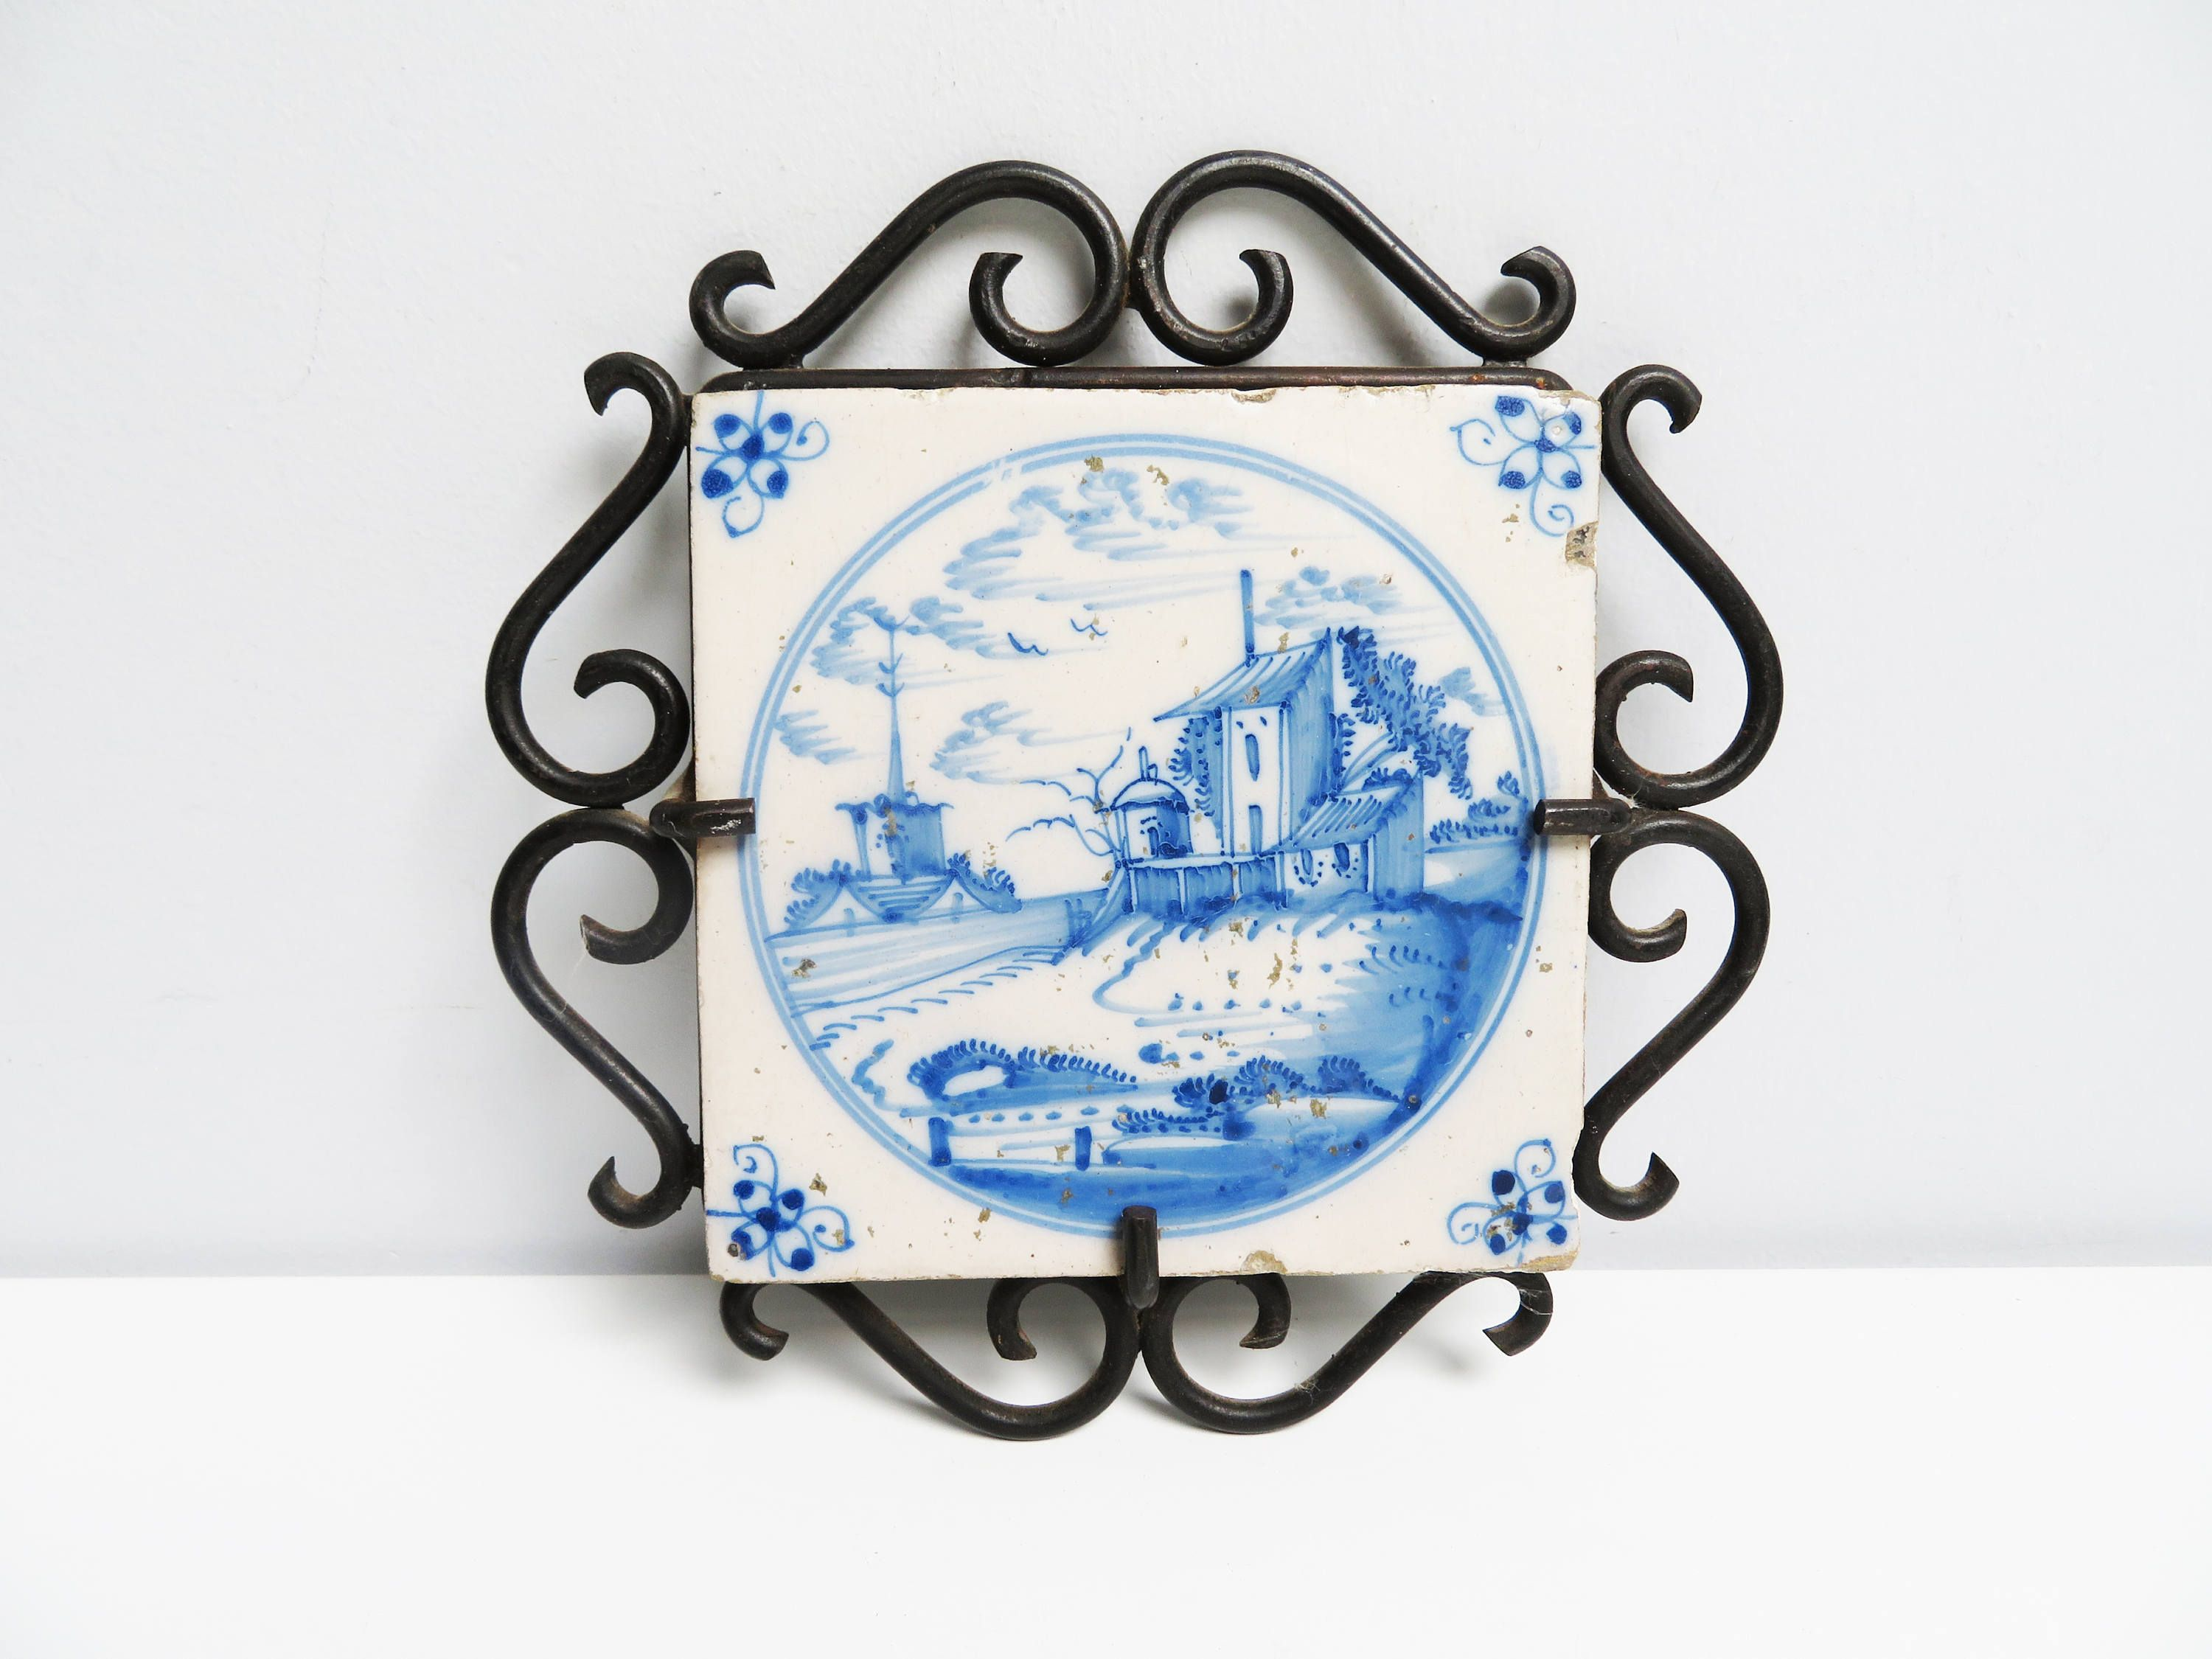 Antique 1800s ceramic tile delft tile ceramic trivet dutch blue antique 1800s ceramic tile delft tile ceramic trivet dutch blue white landscape church house kitchen tile handpainted wrought iron frame dailygadgetfo Image collections